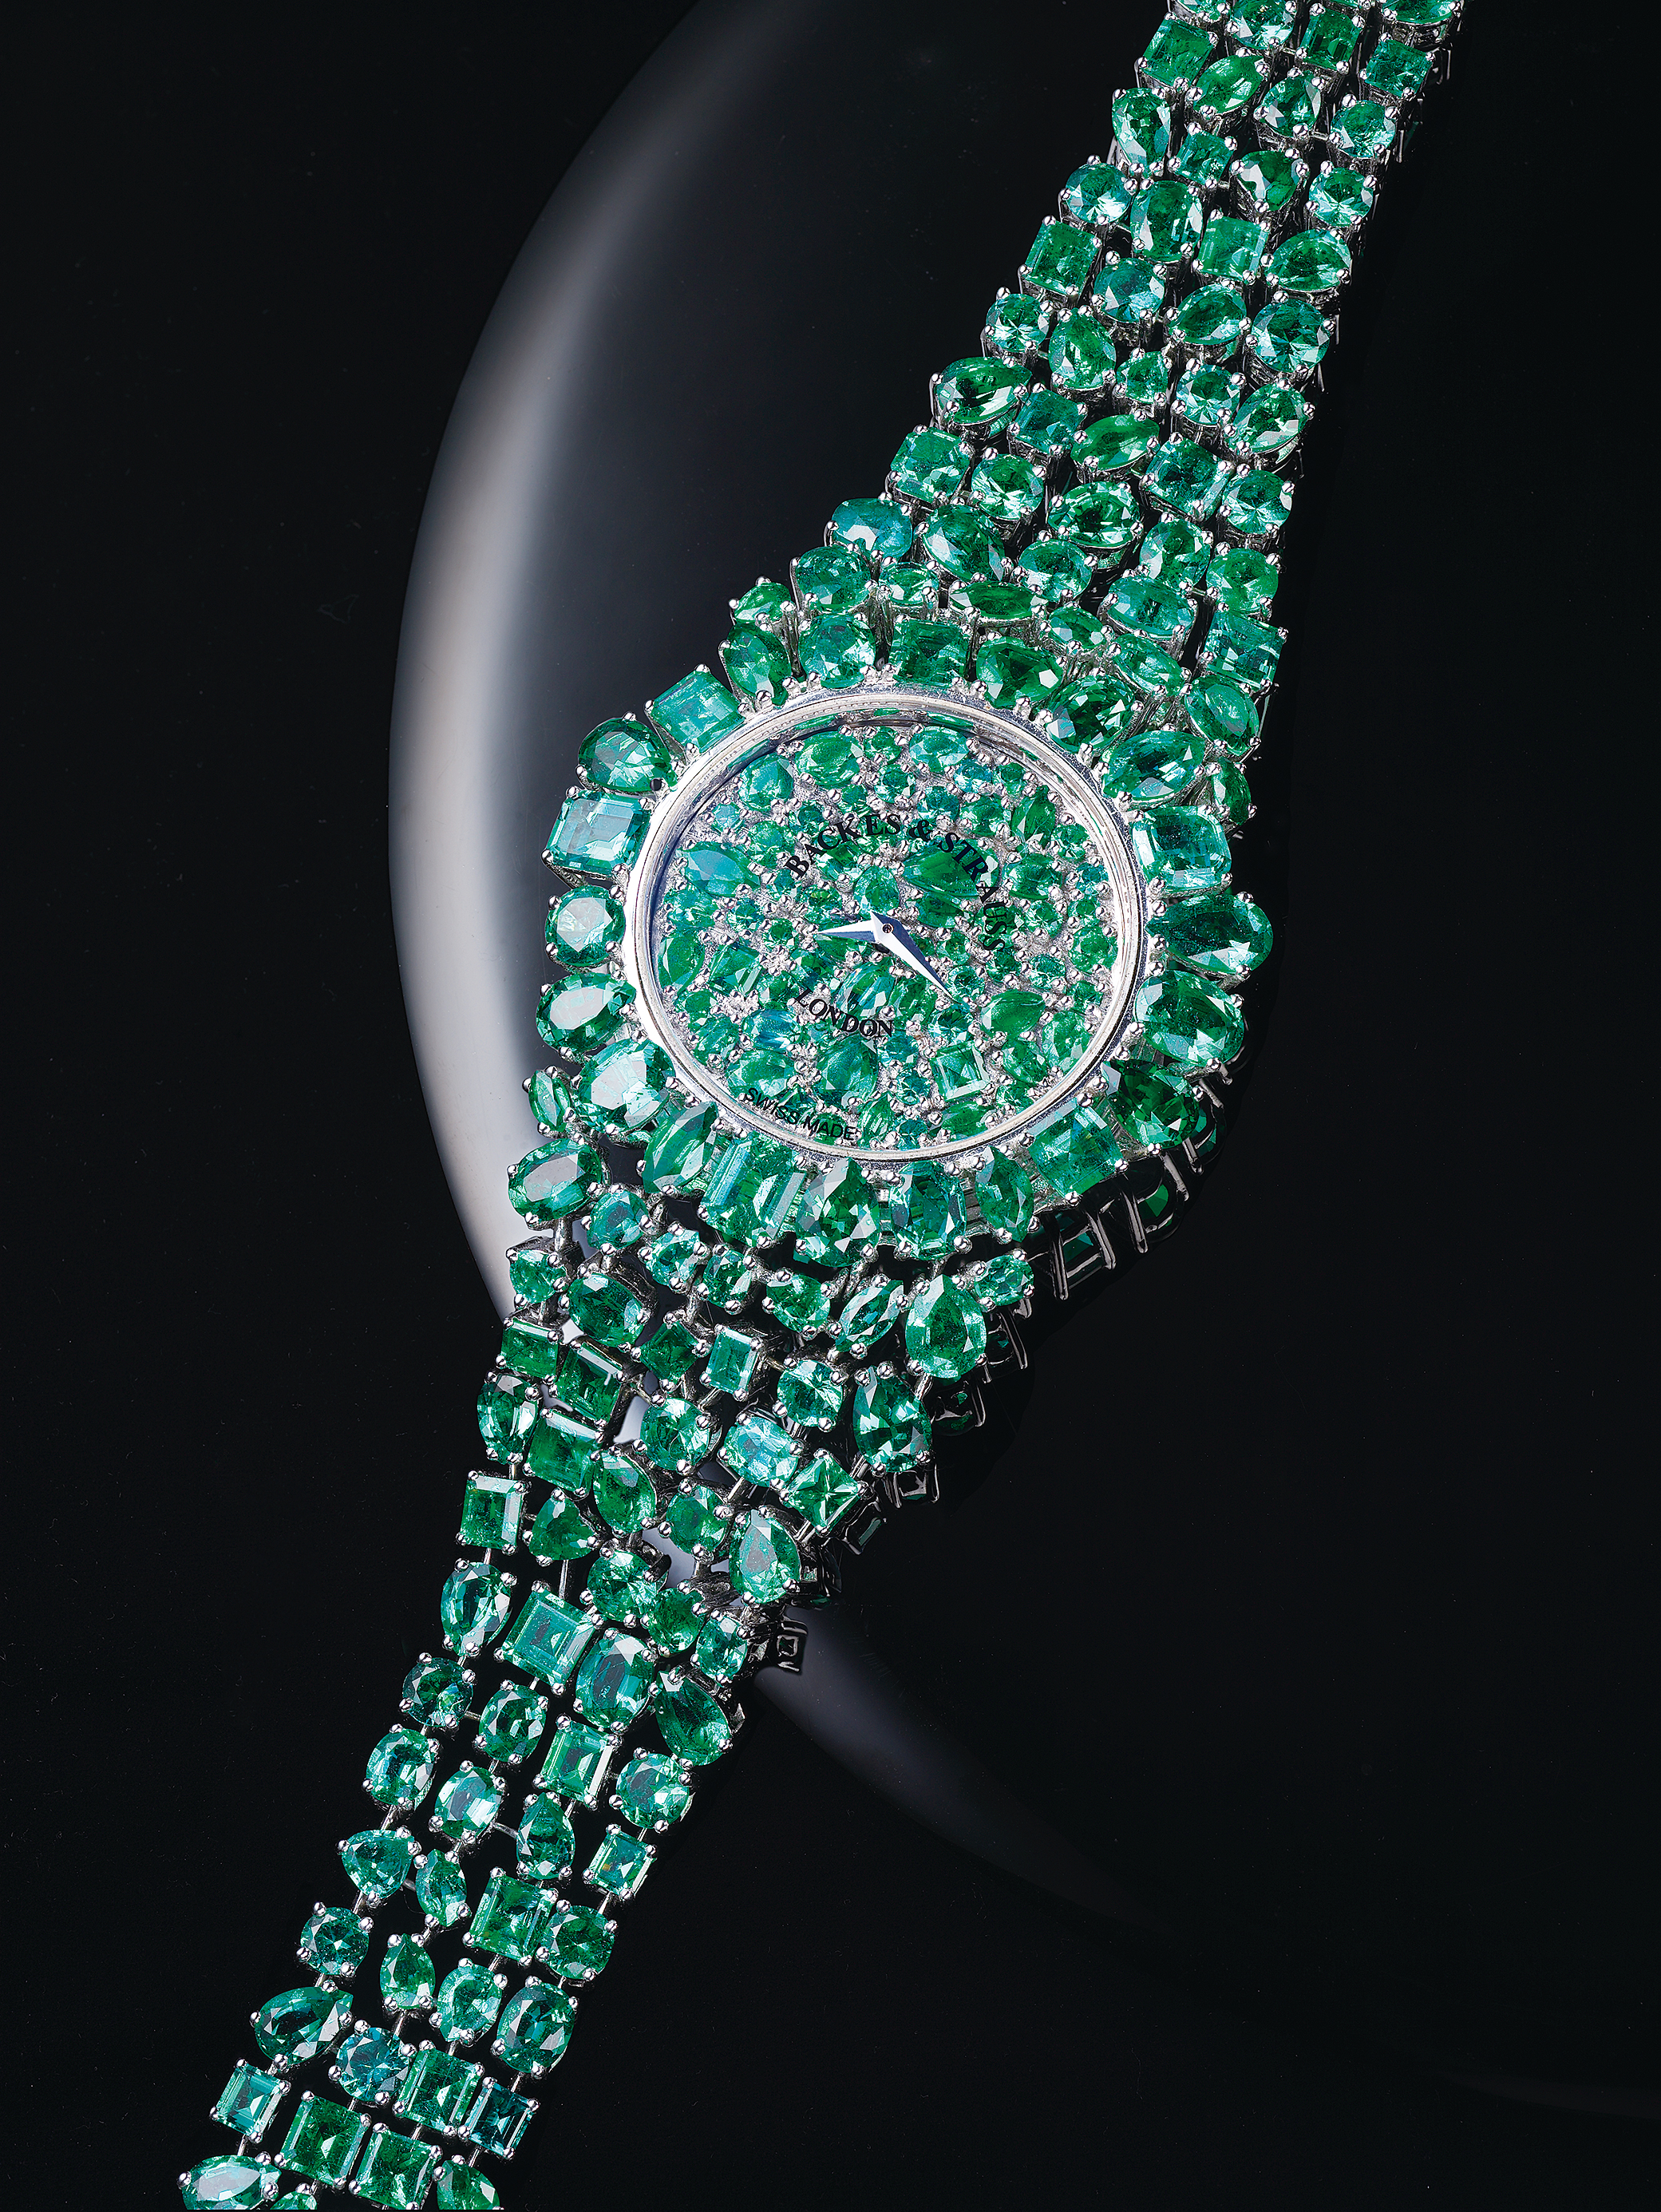 Piccadilly Royal Princesses Emerald Green diamond watch